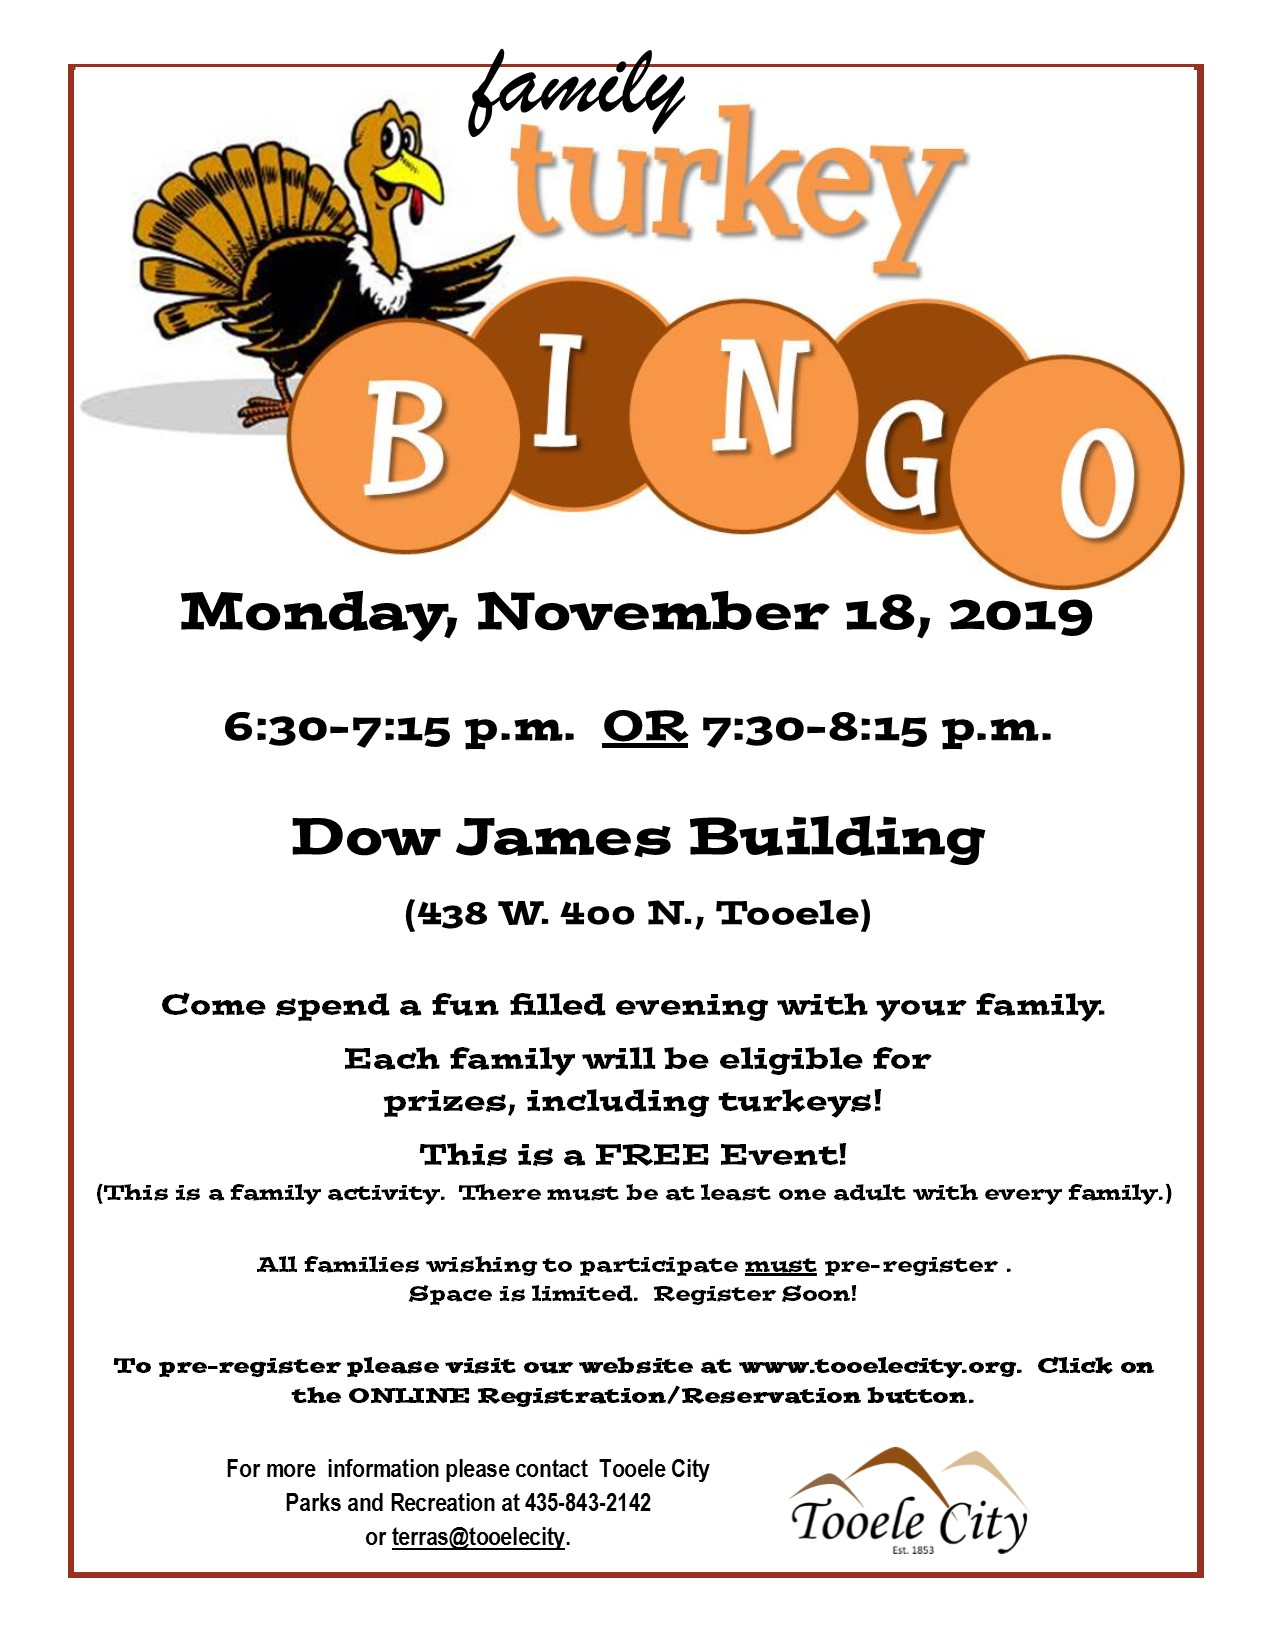 Turkey Bingo - A FREE Family Event! @ Dow James Building | Tooele | Utah | United States